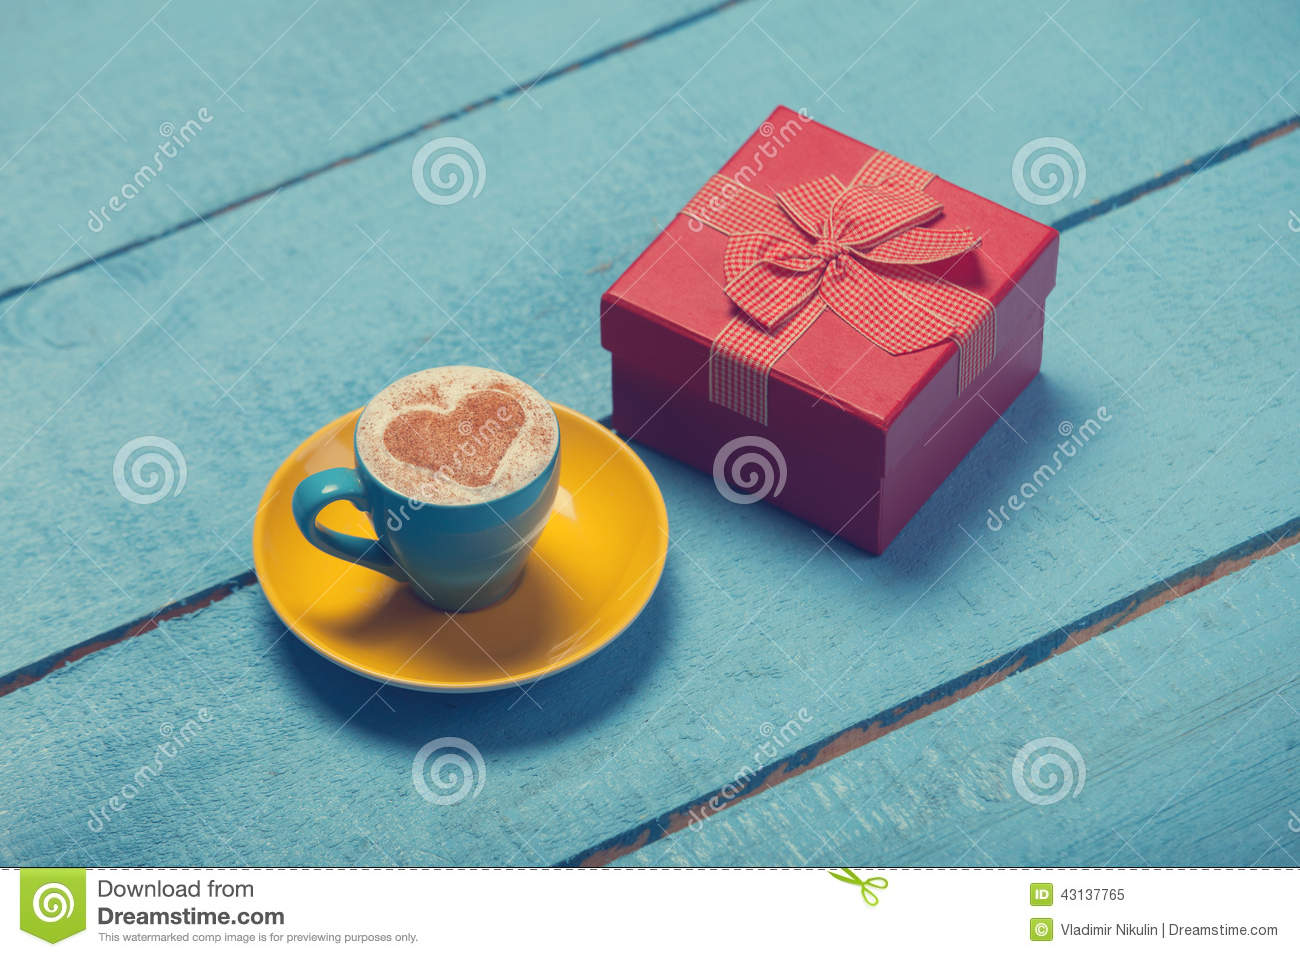 Cup of coffee and gift